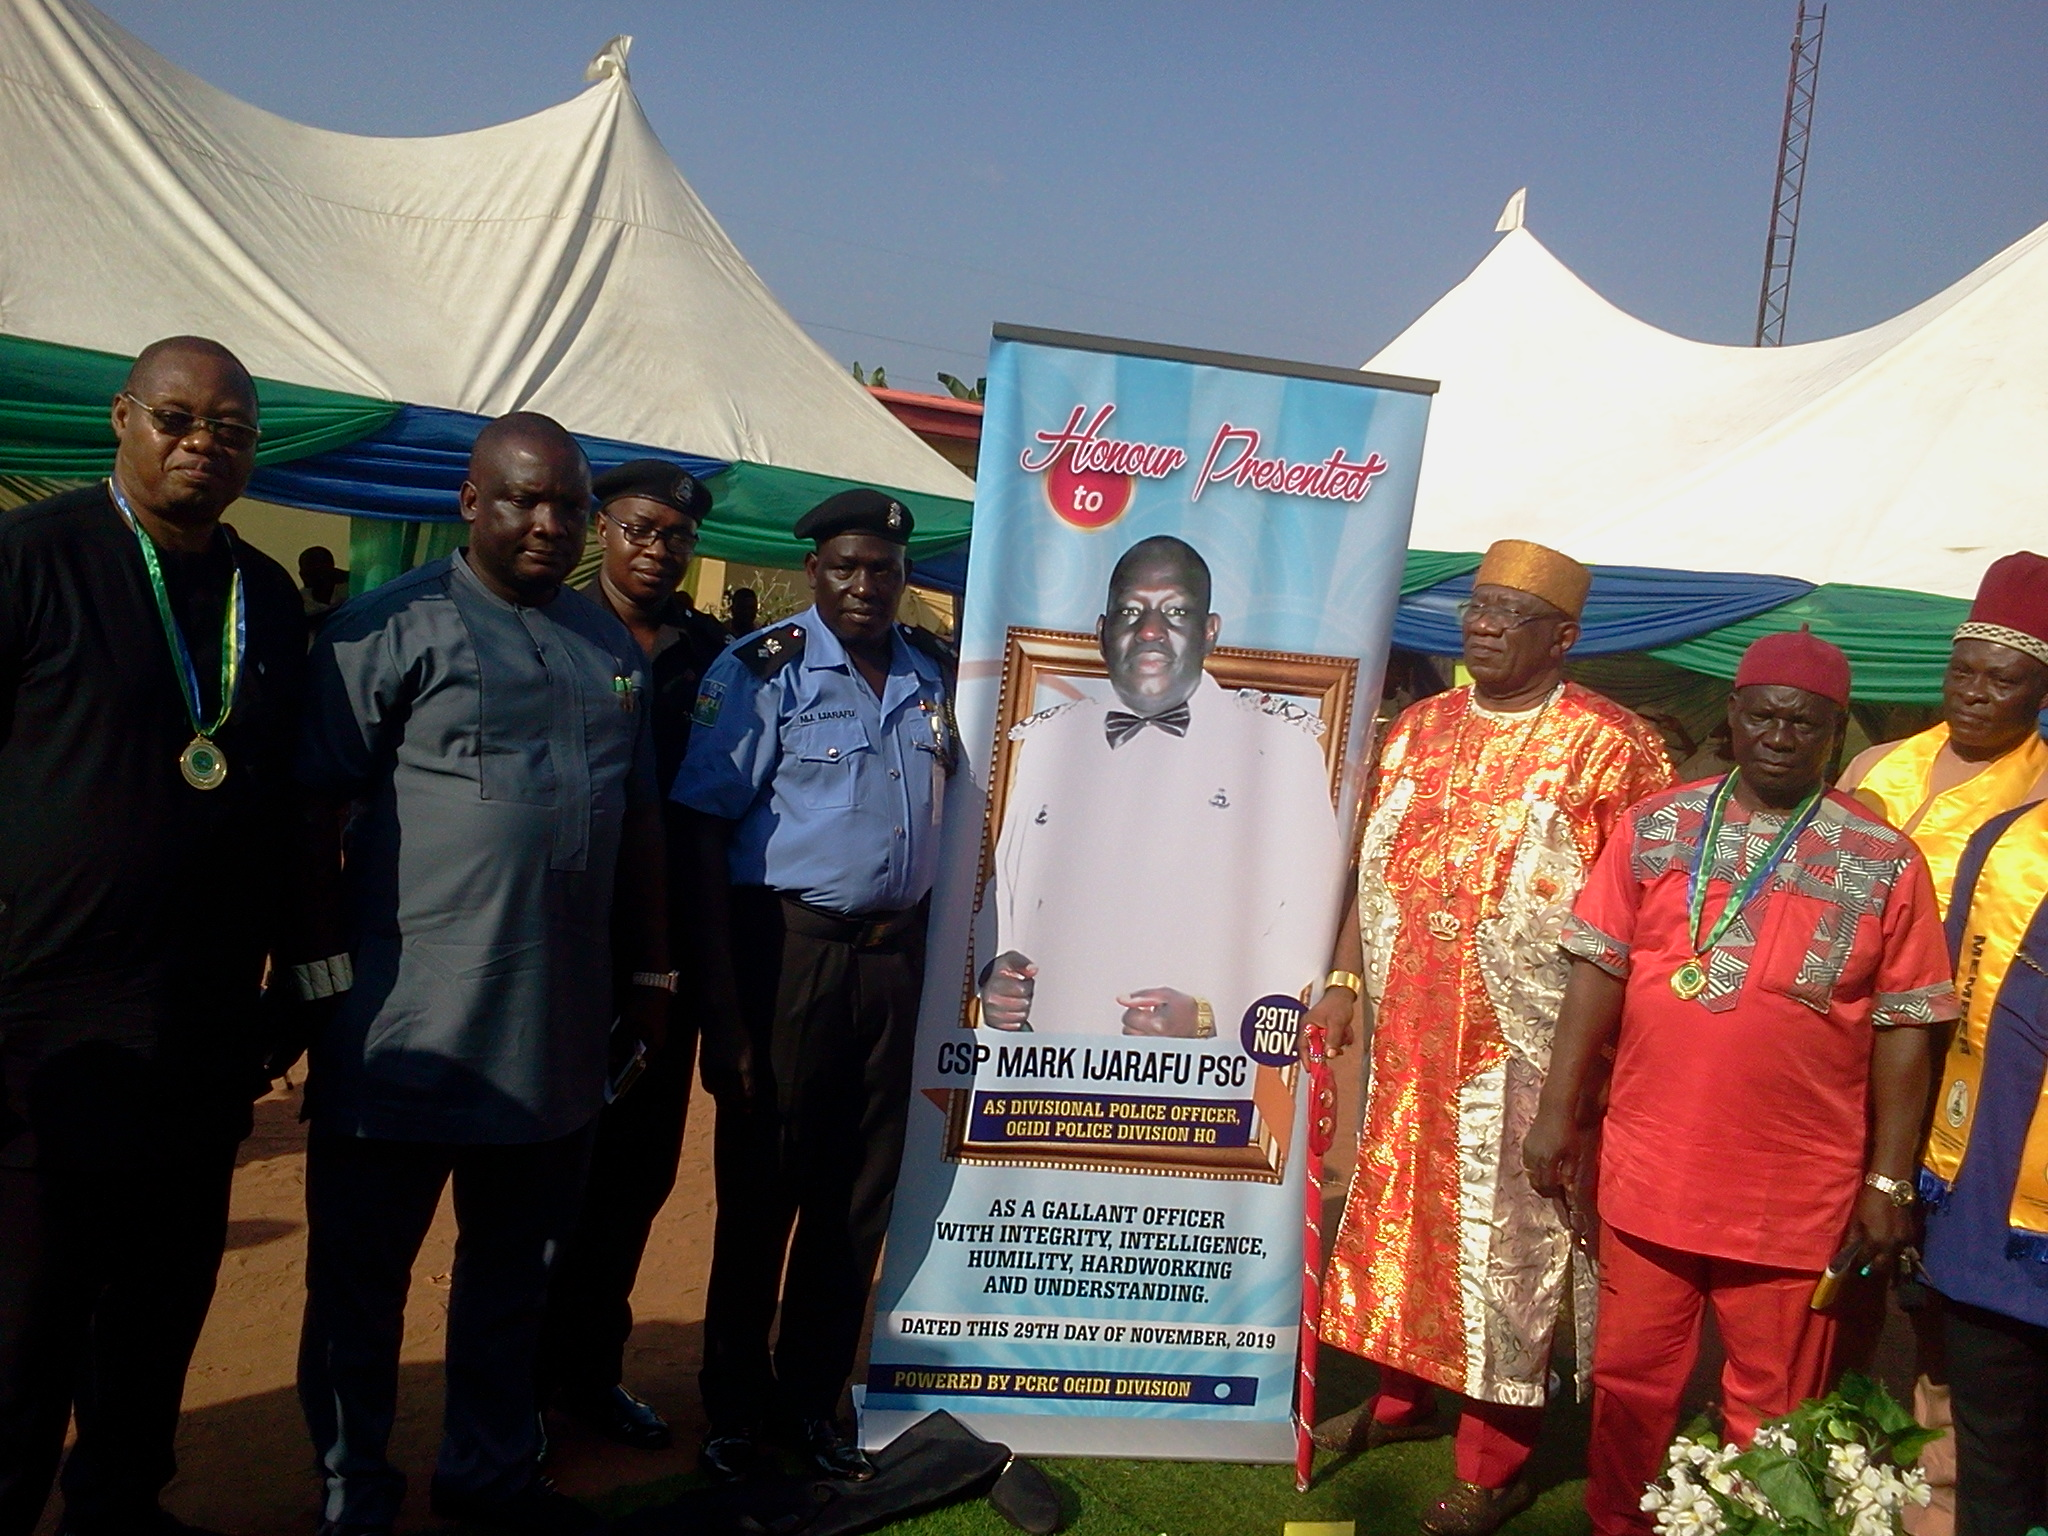 PCRC Calls on individuals to assist in funding the Nigerian Police, Awards deserving individuals